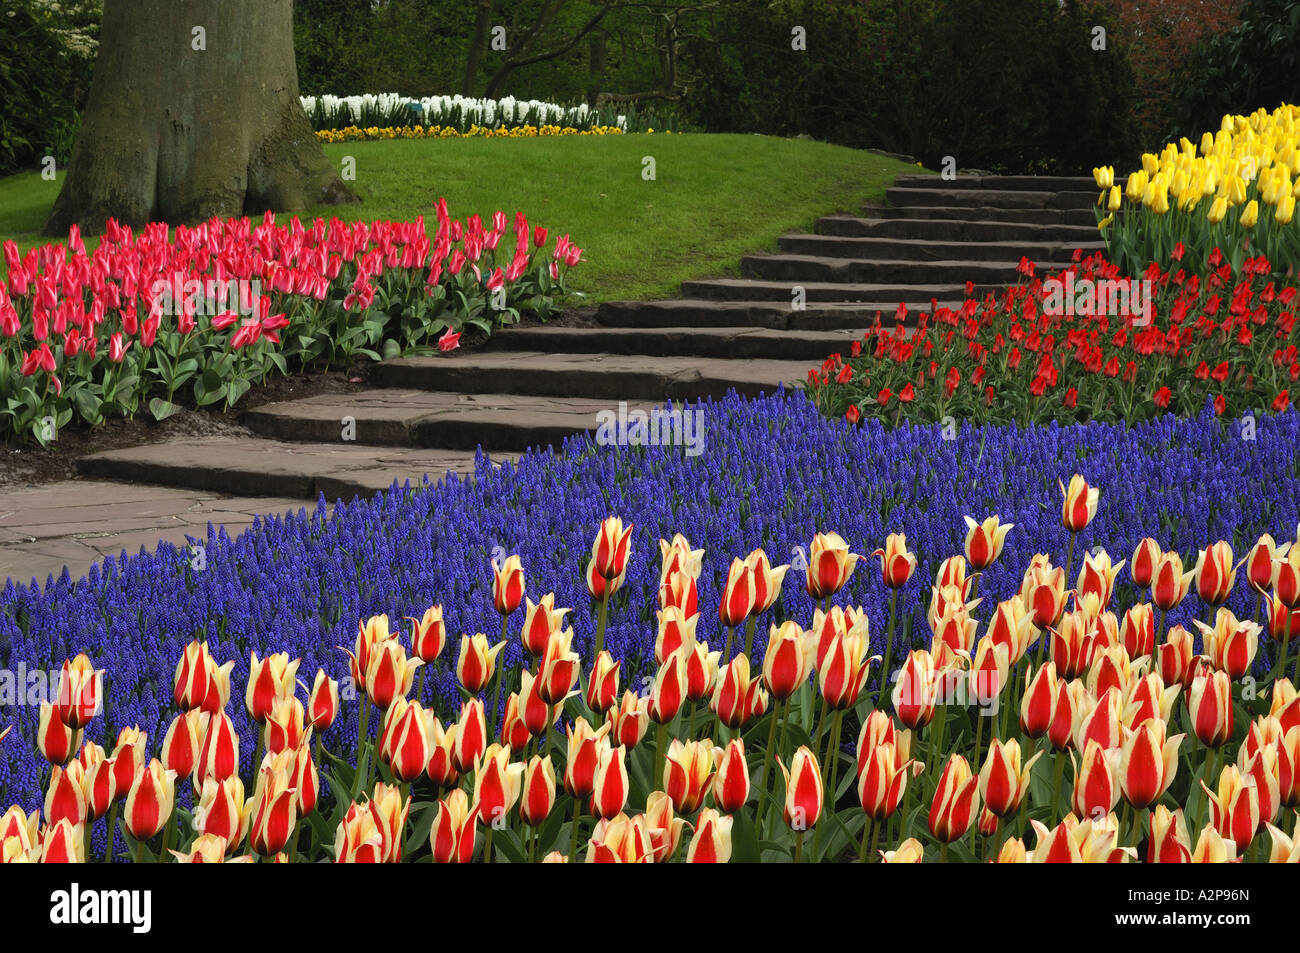 common garden tulip (Tulipa gesneriana), flowerbed with tulips and grape hyacinths, Muscari botryoides, Netherlands, Stock Photo